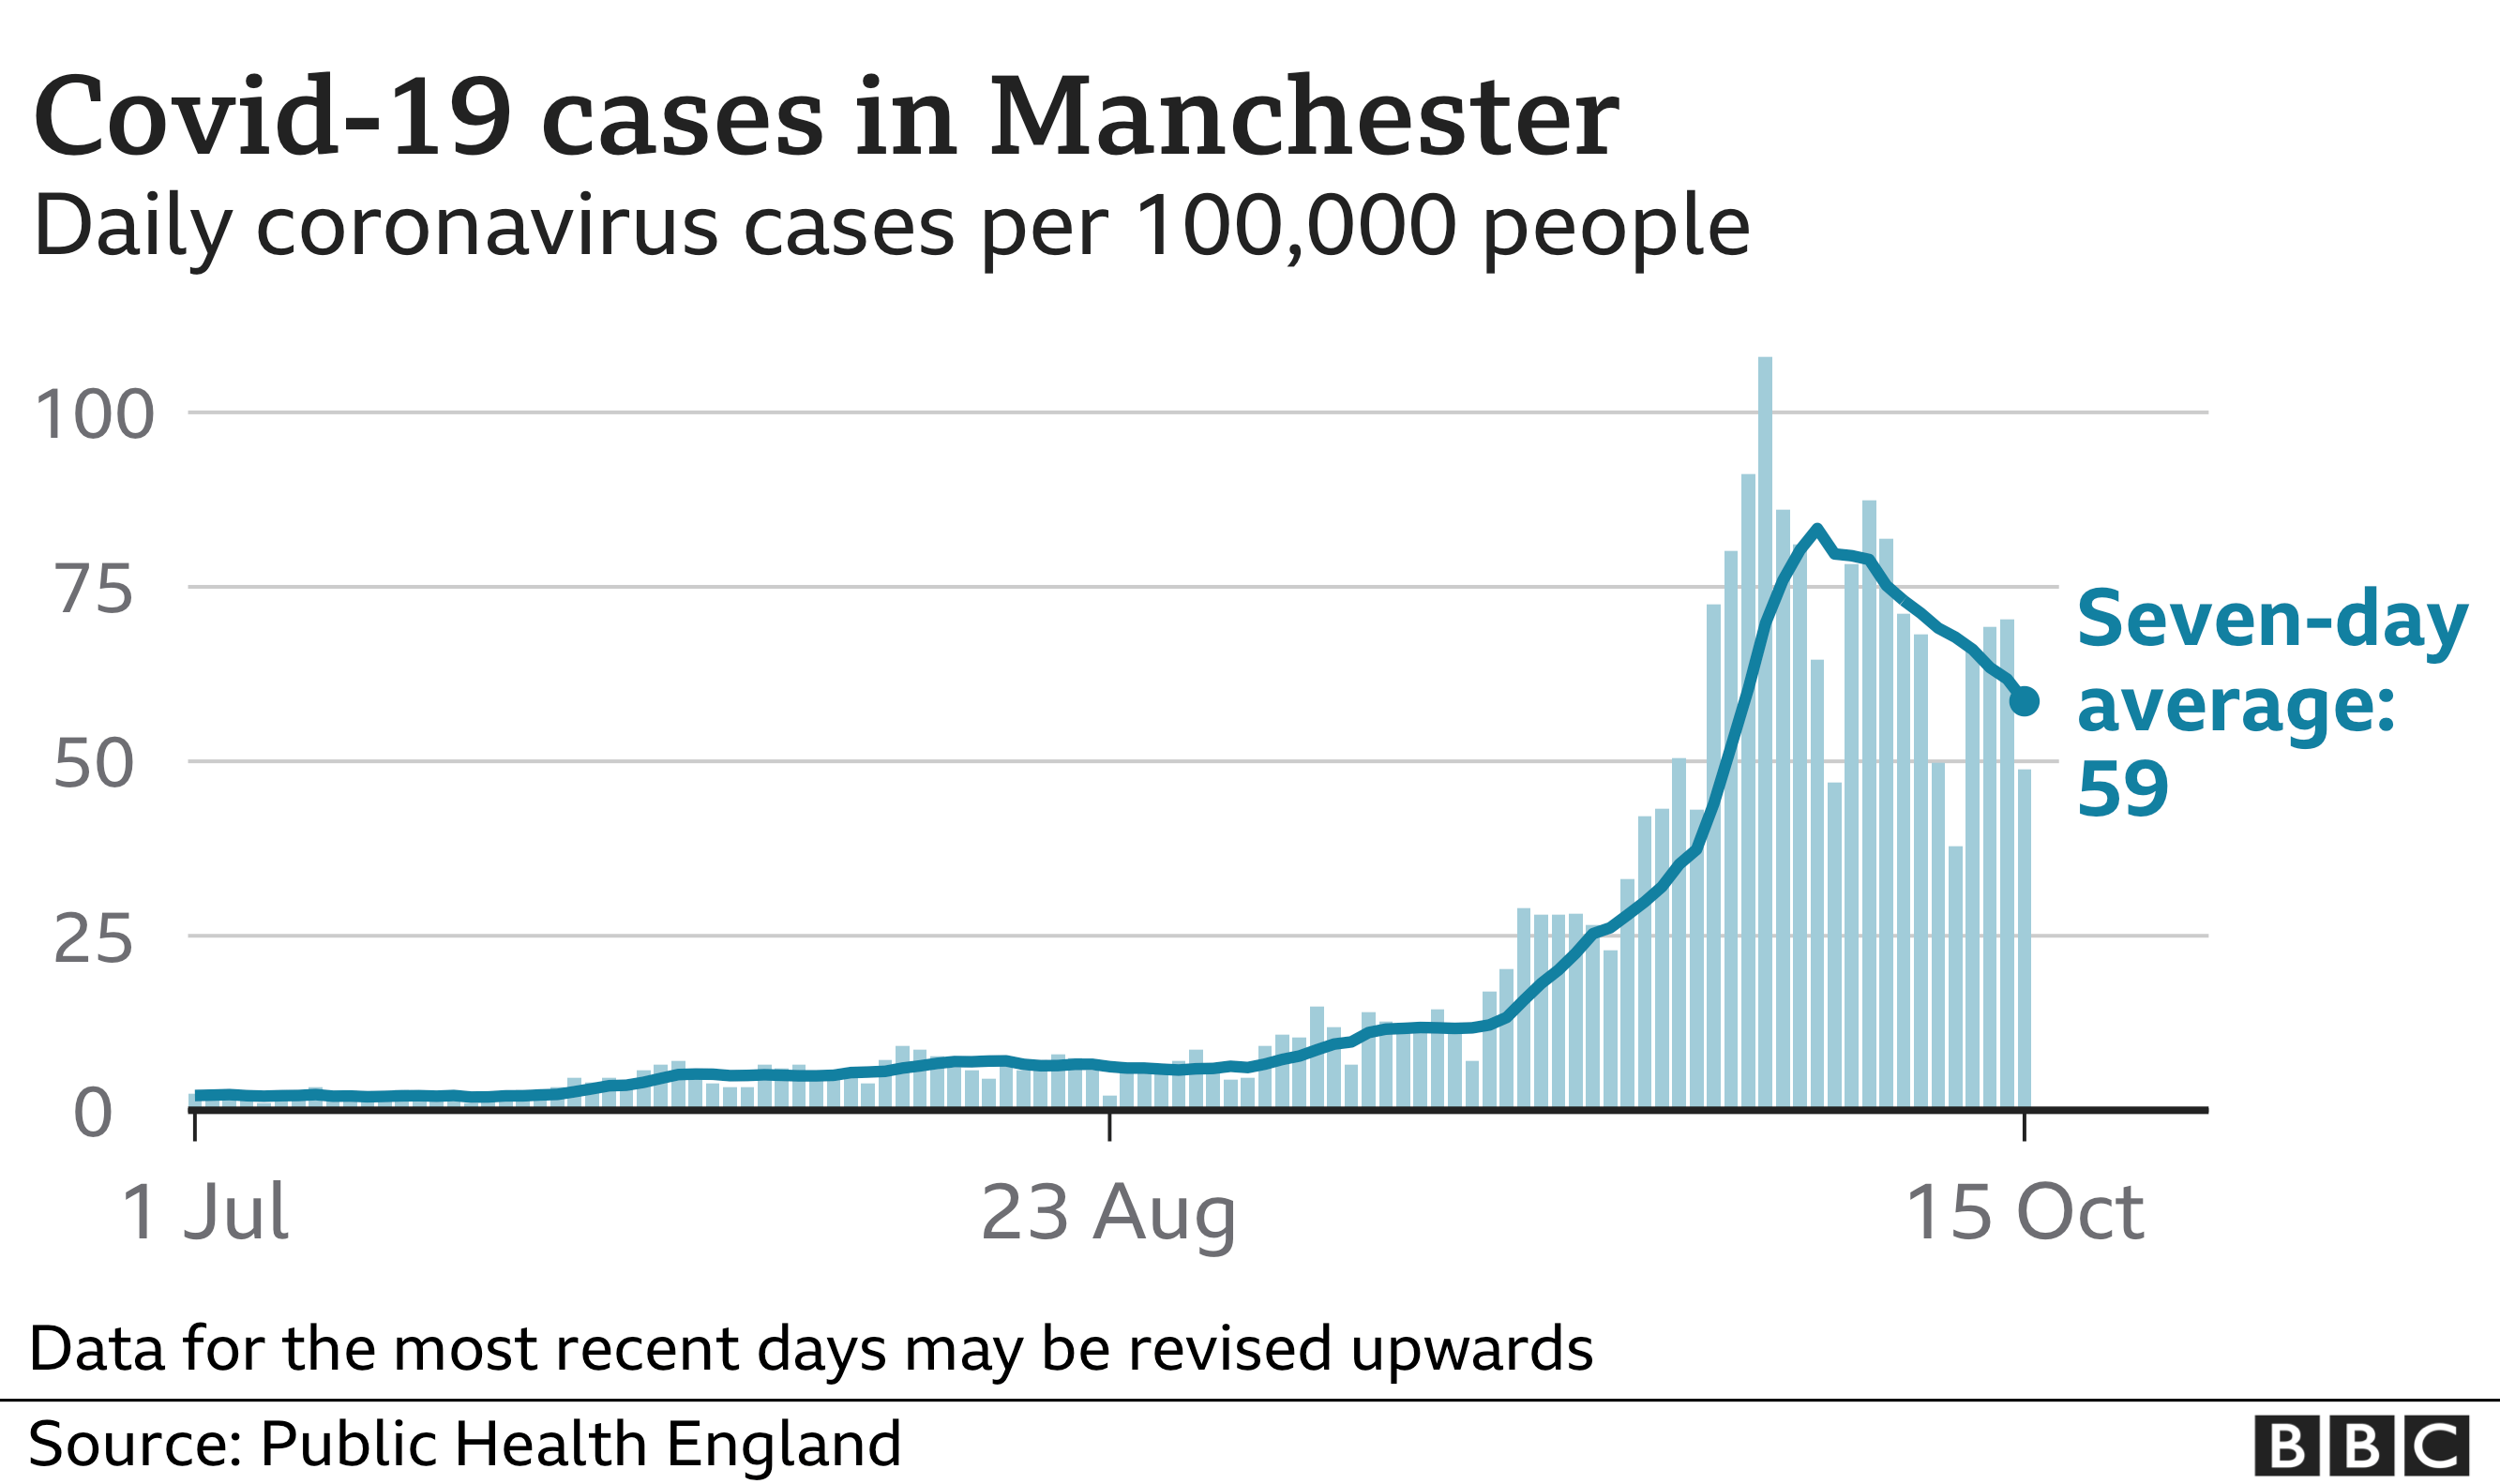 Graph showing Covid-19 cases in Manchester